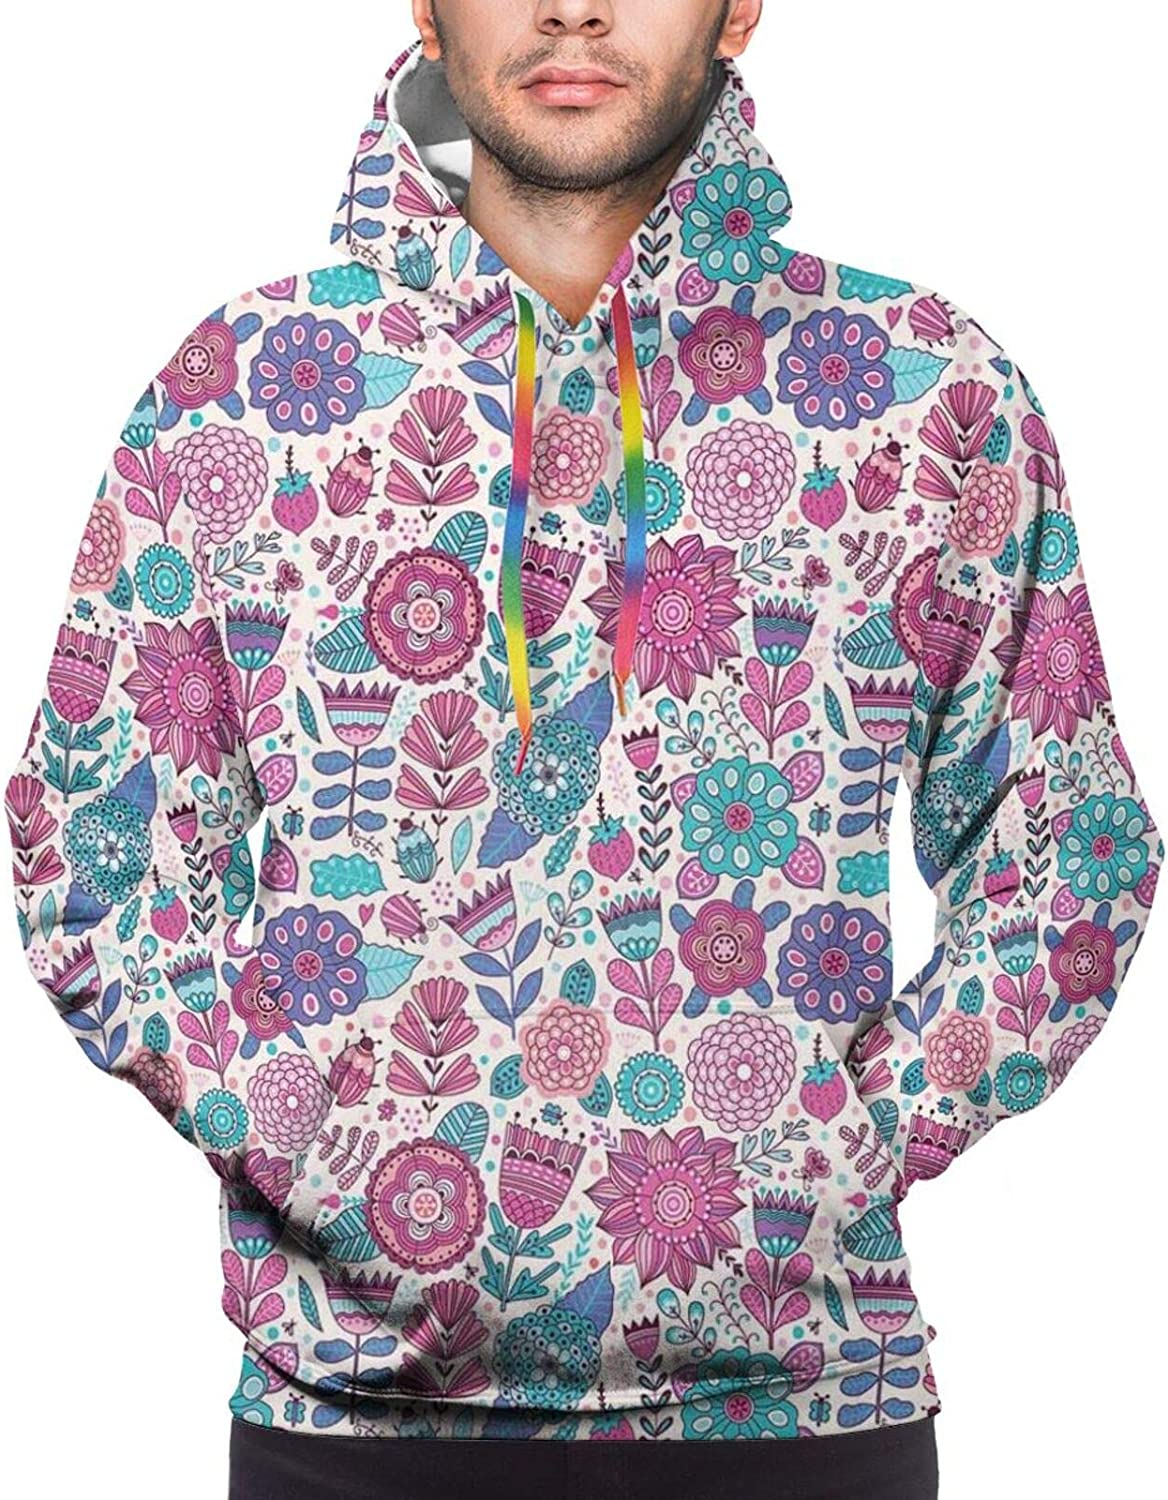 Men's Hoodies Sweatshirts,Doodle Pattern Composition with Forest Wildlife Animal Characters in Winter Clothes